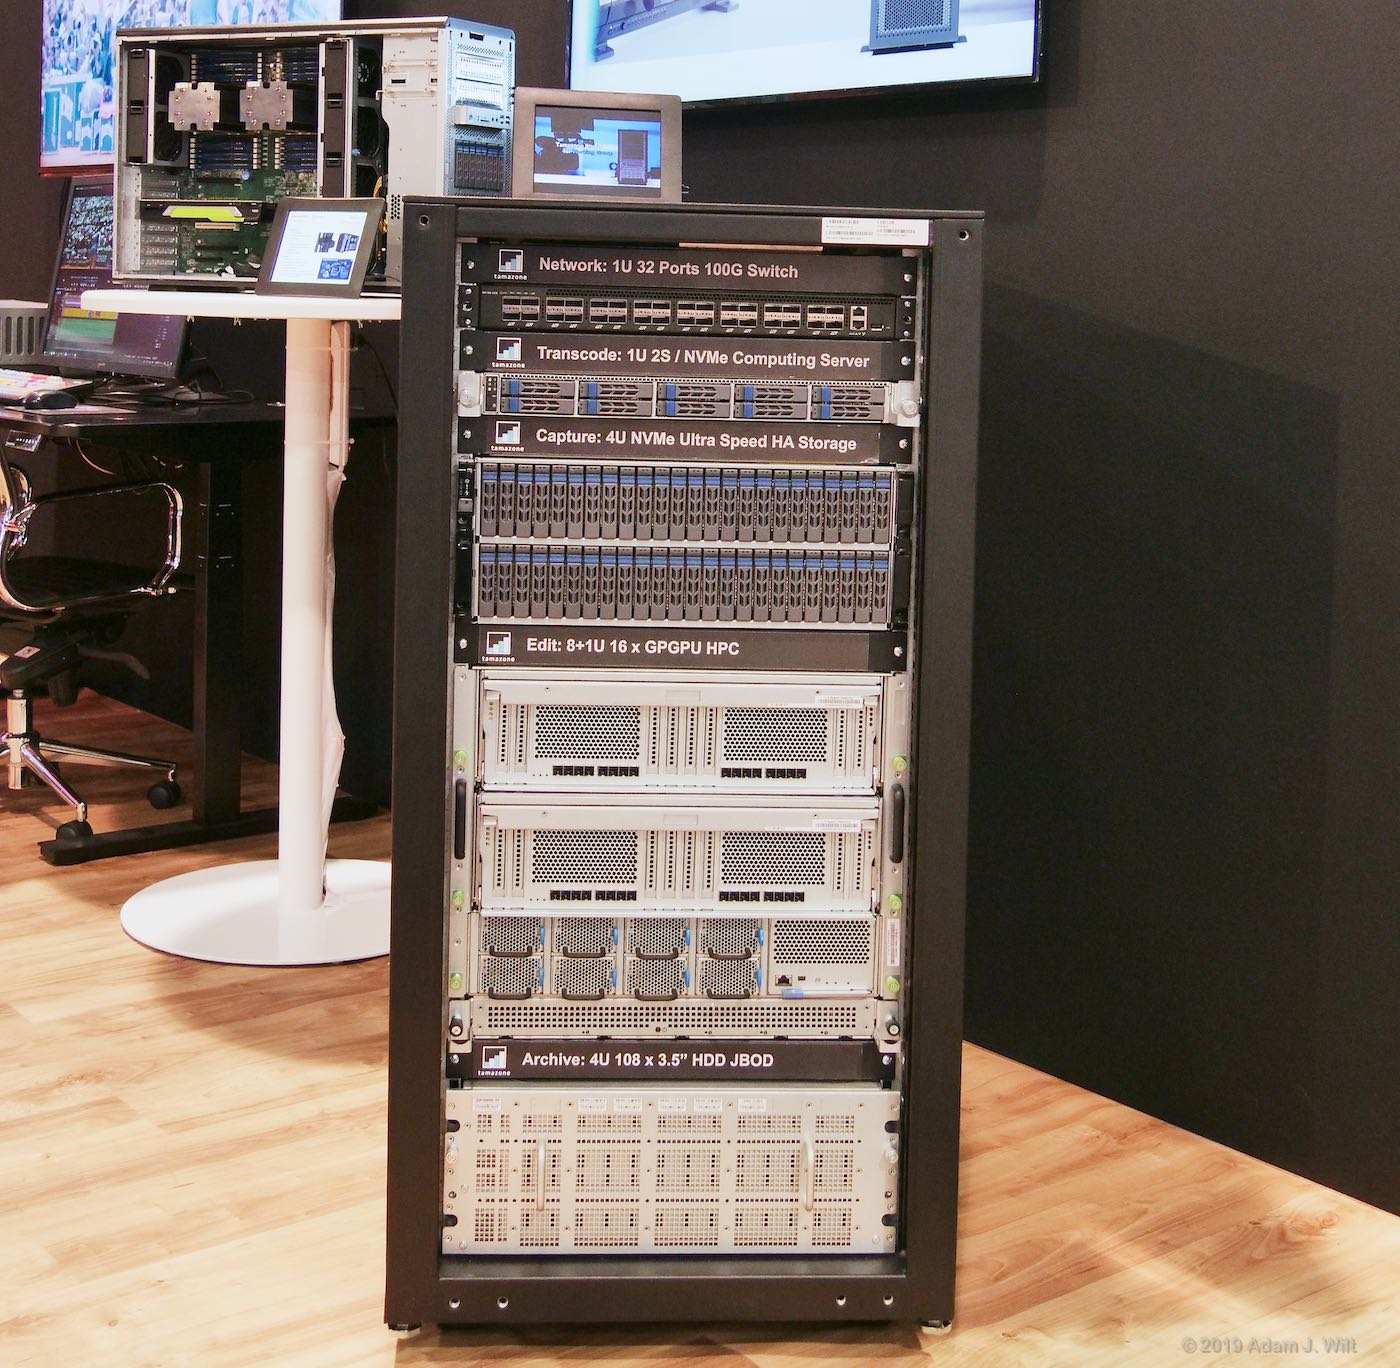 Rack of 8K gear at Sharp's booth. An editing PC is on the table behind it.